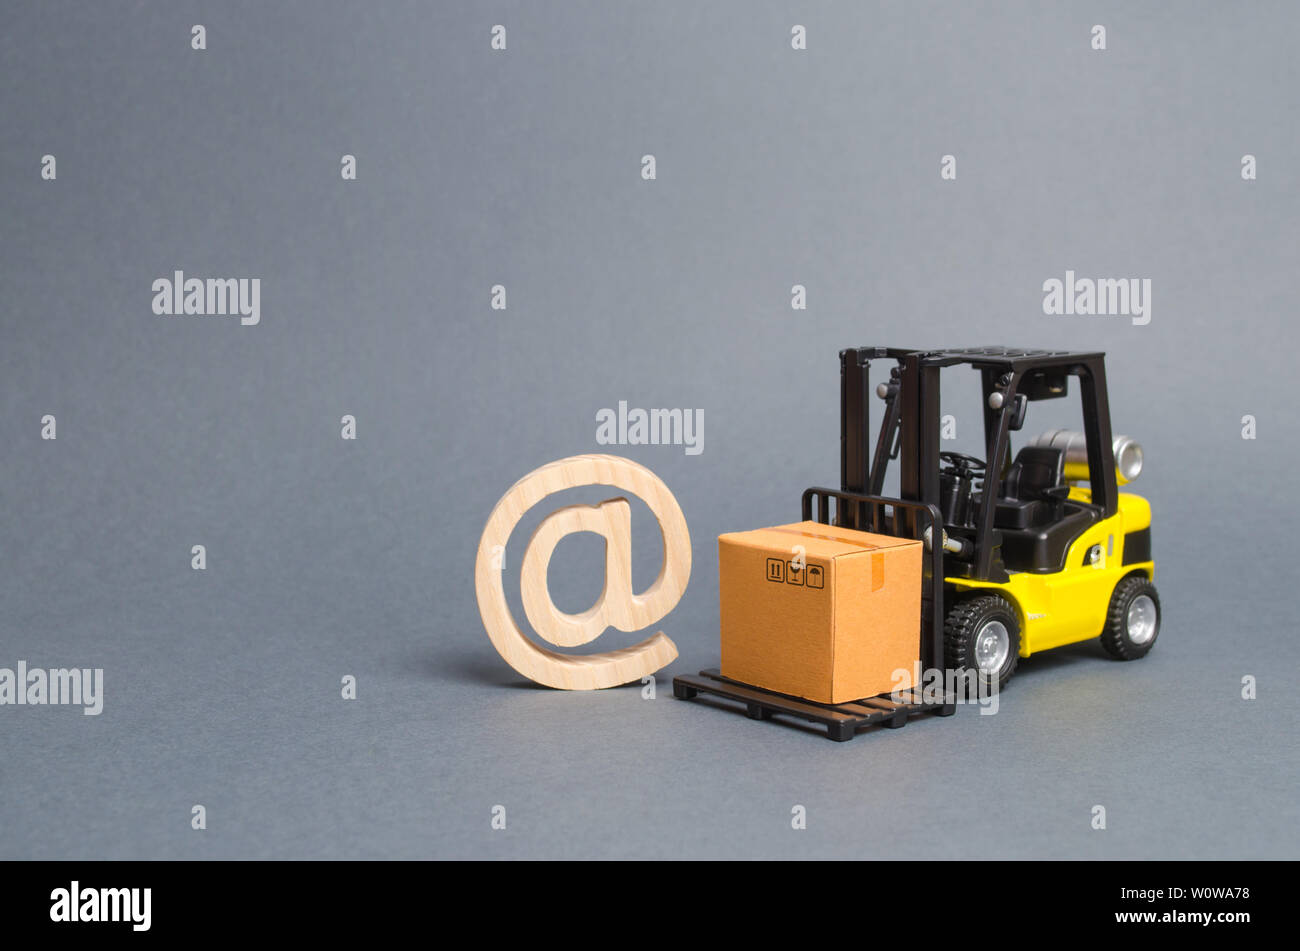 Yellow Forklift truck carries a cardboard box near a email symbol commercial AT. development of Internet network trade. E-commerce. sales of goods thr - Stock Image